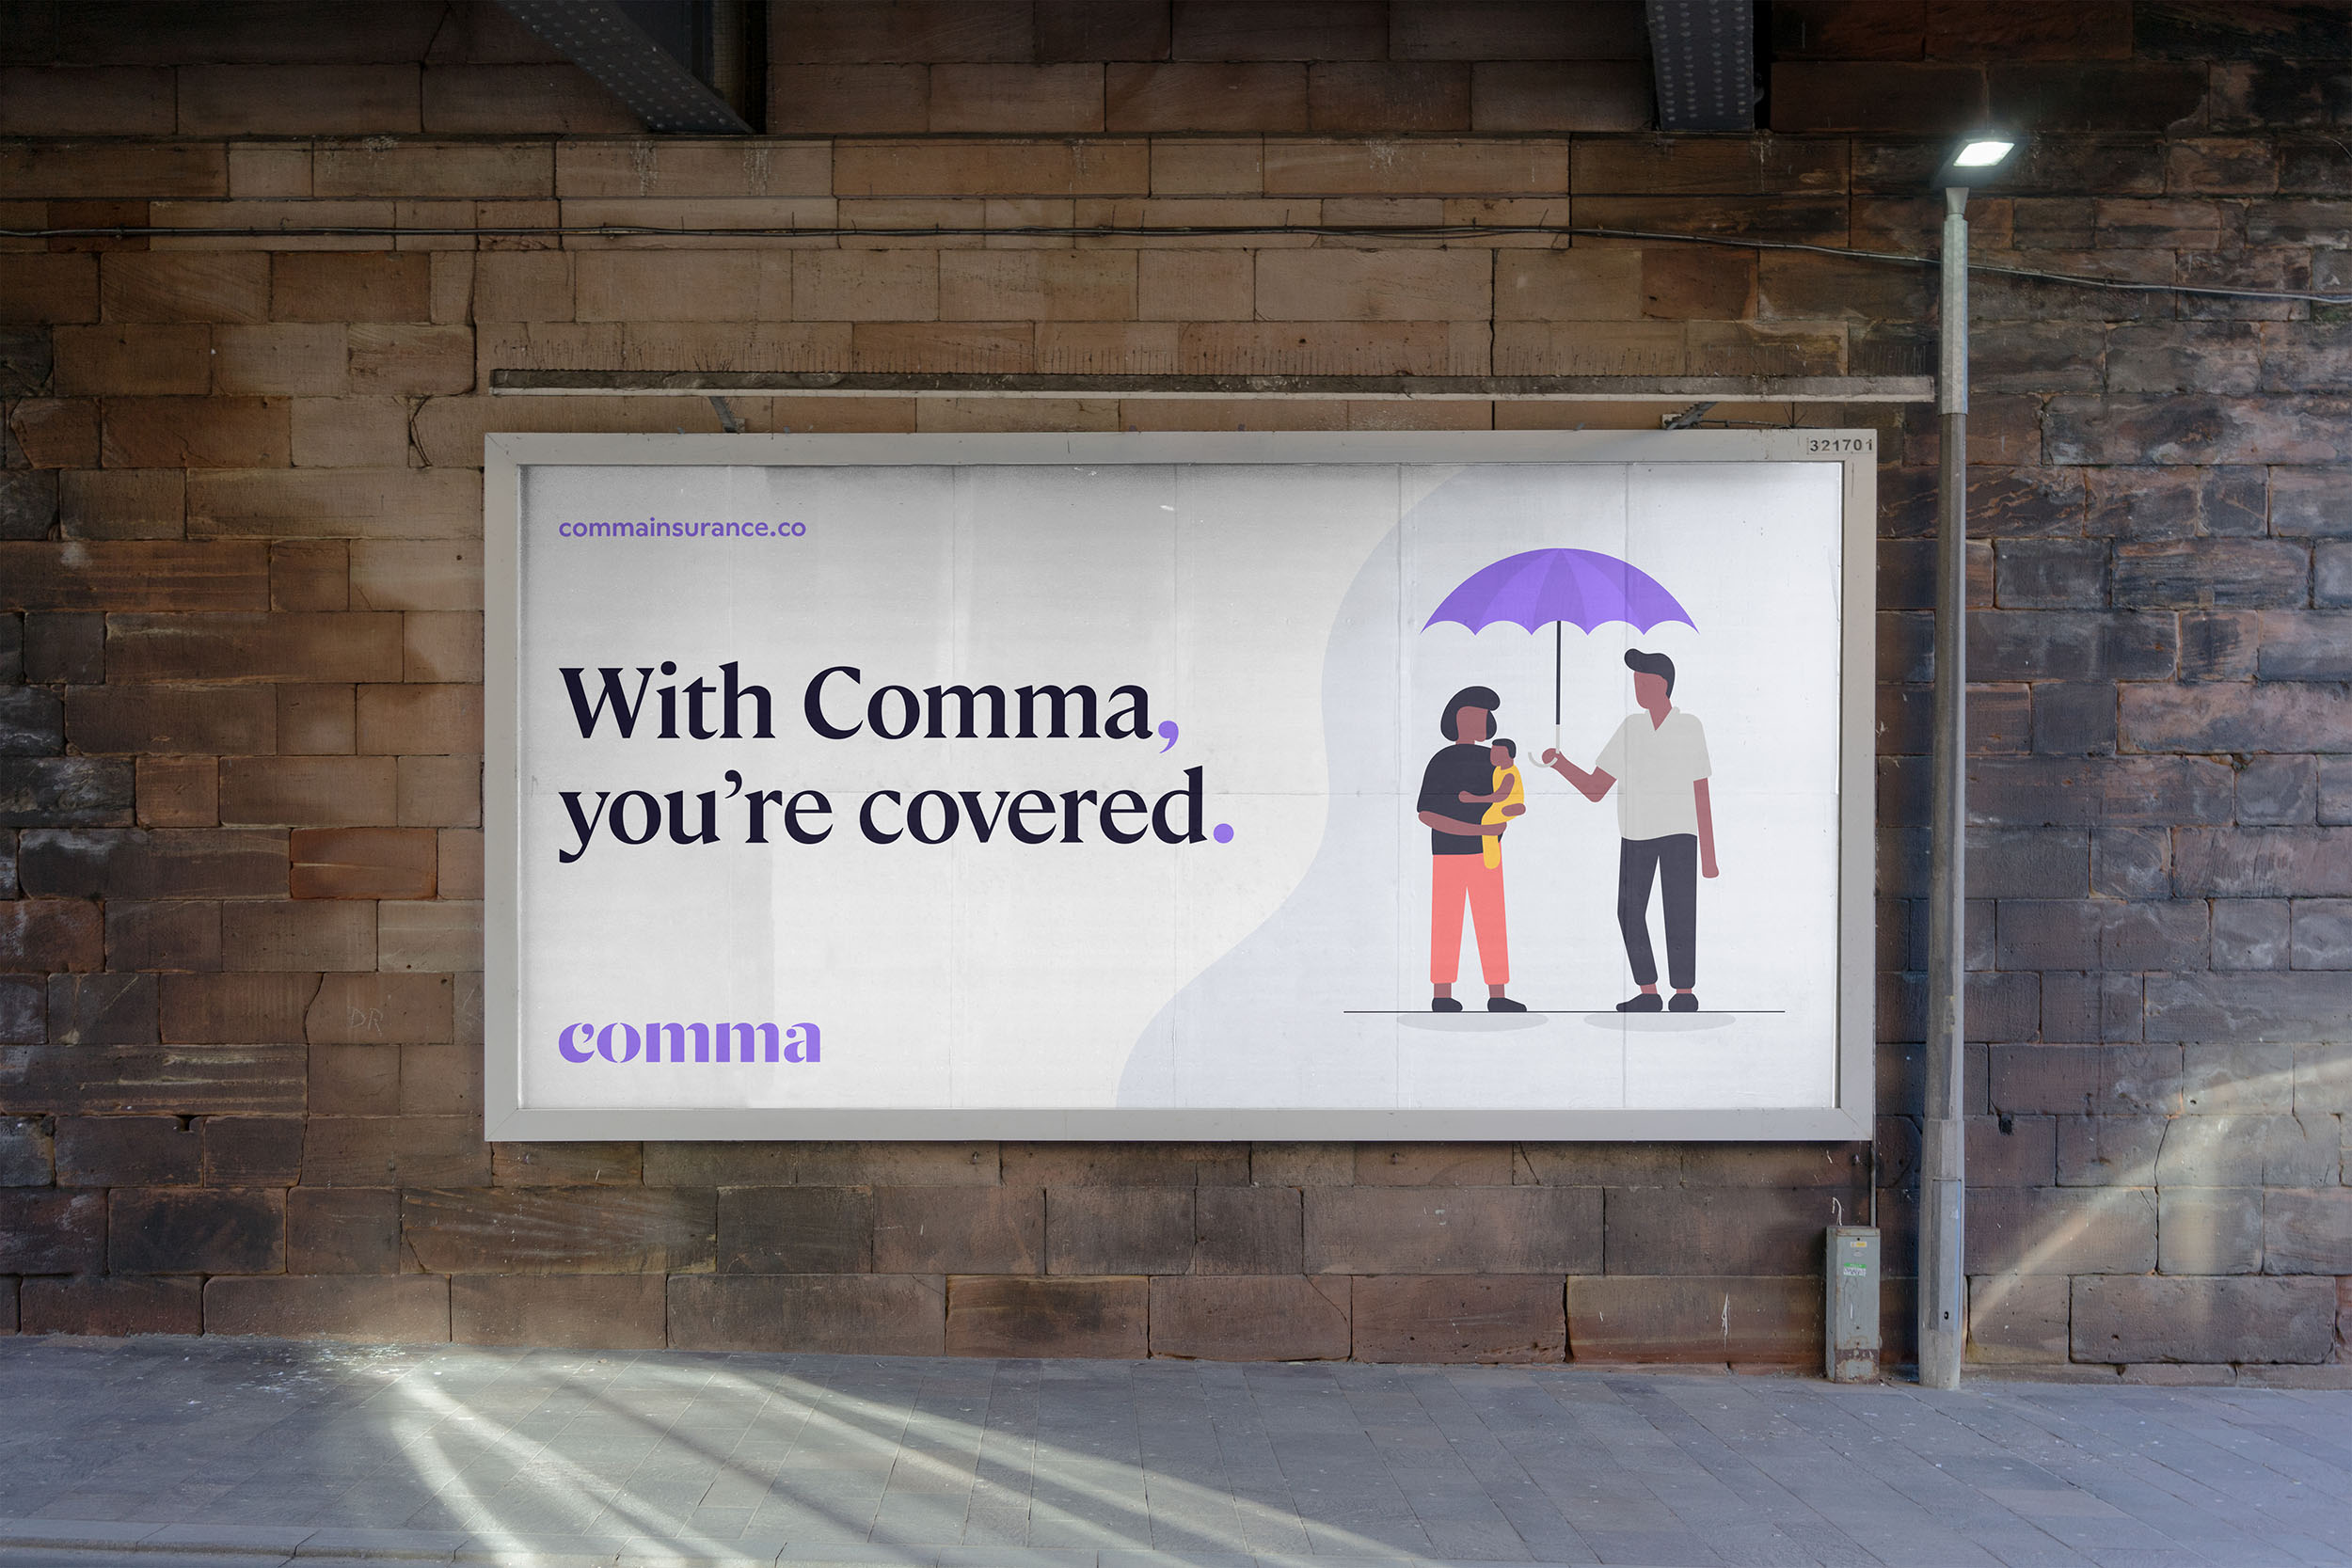 'With comma, you're covered' billboard